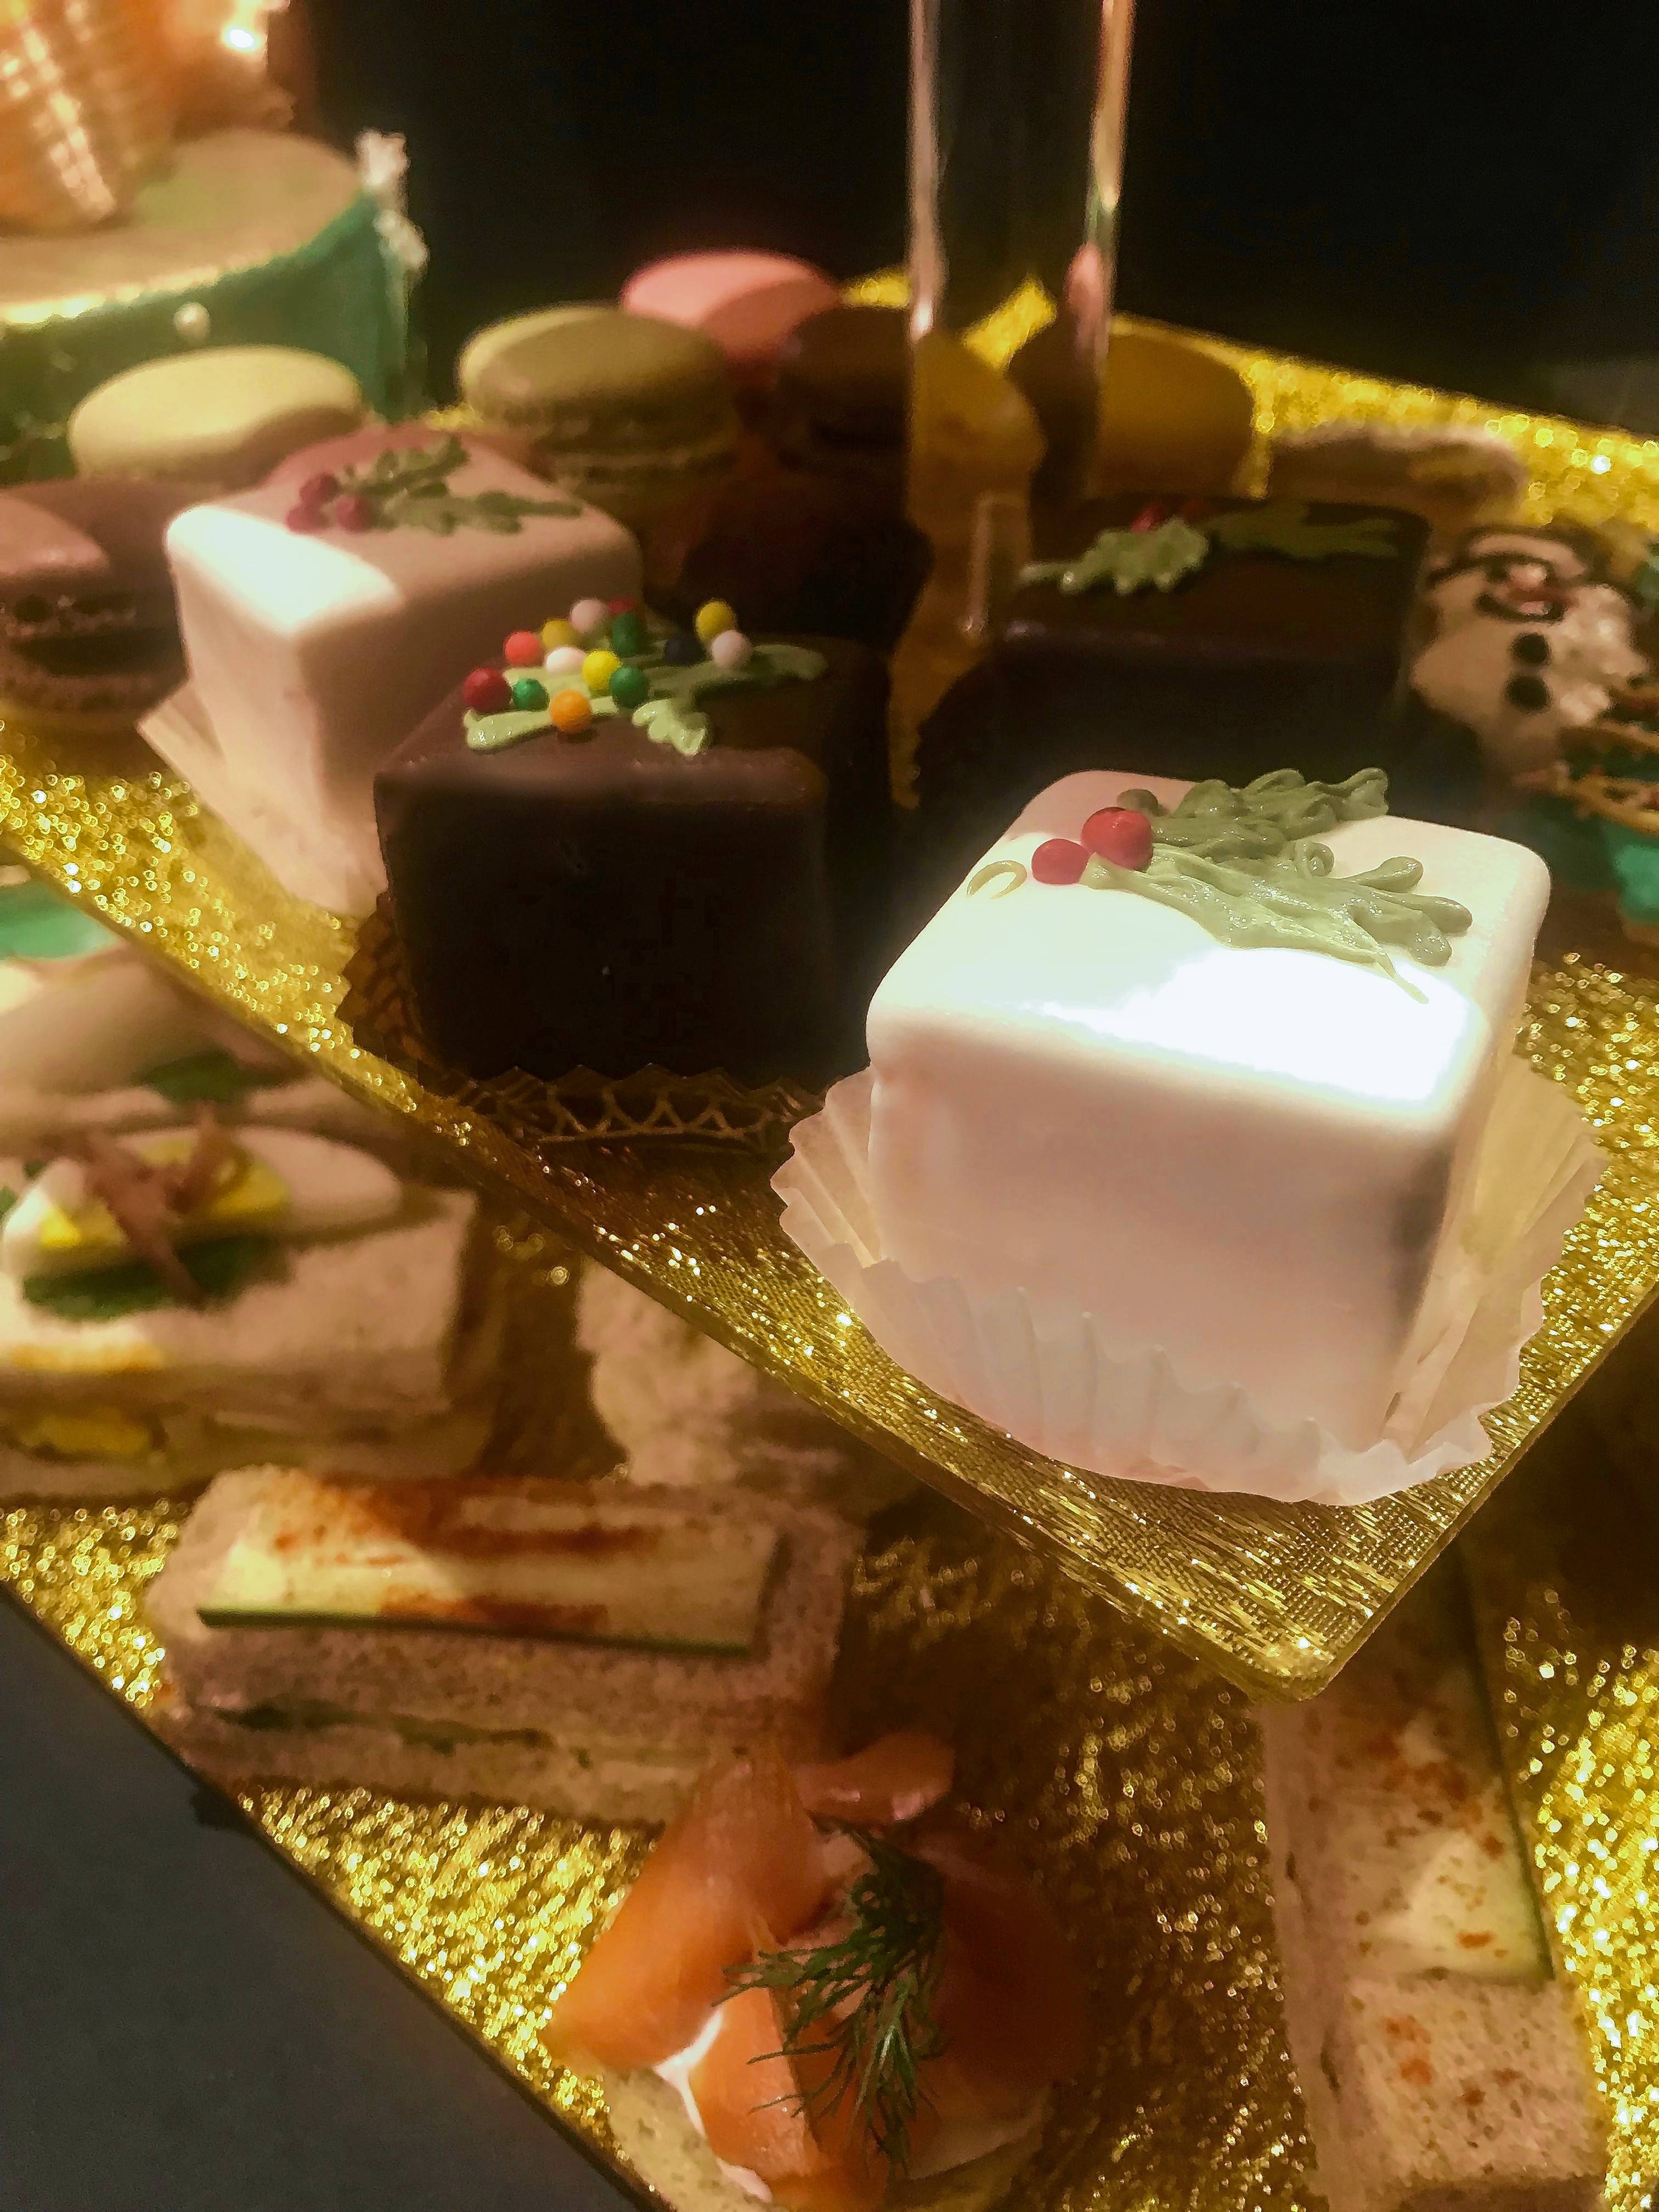 Petits fours, macaroons, savory finger sandwiches and more are on the menu at All Chocolate Kitchen Primo's afternoon tea, returning at 2 p.m. Friday, Jan. 12.